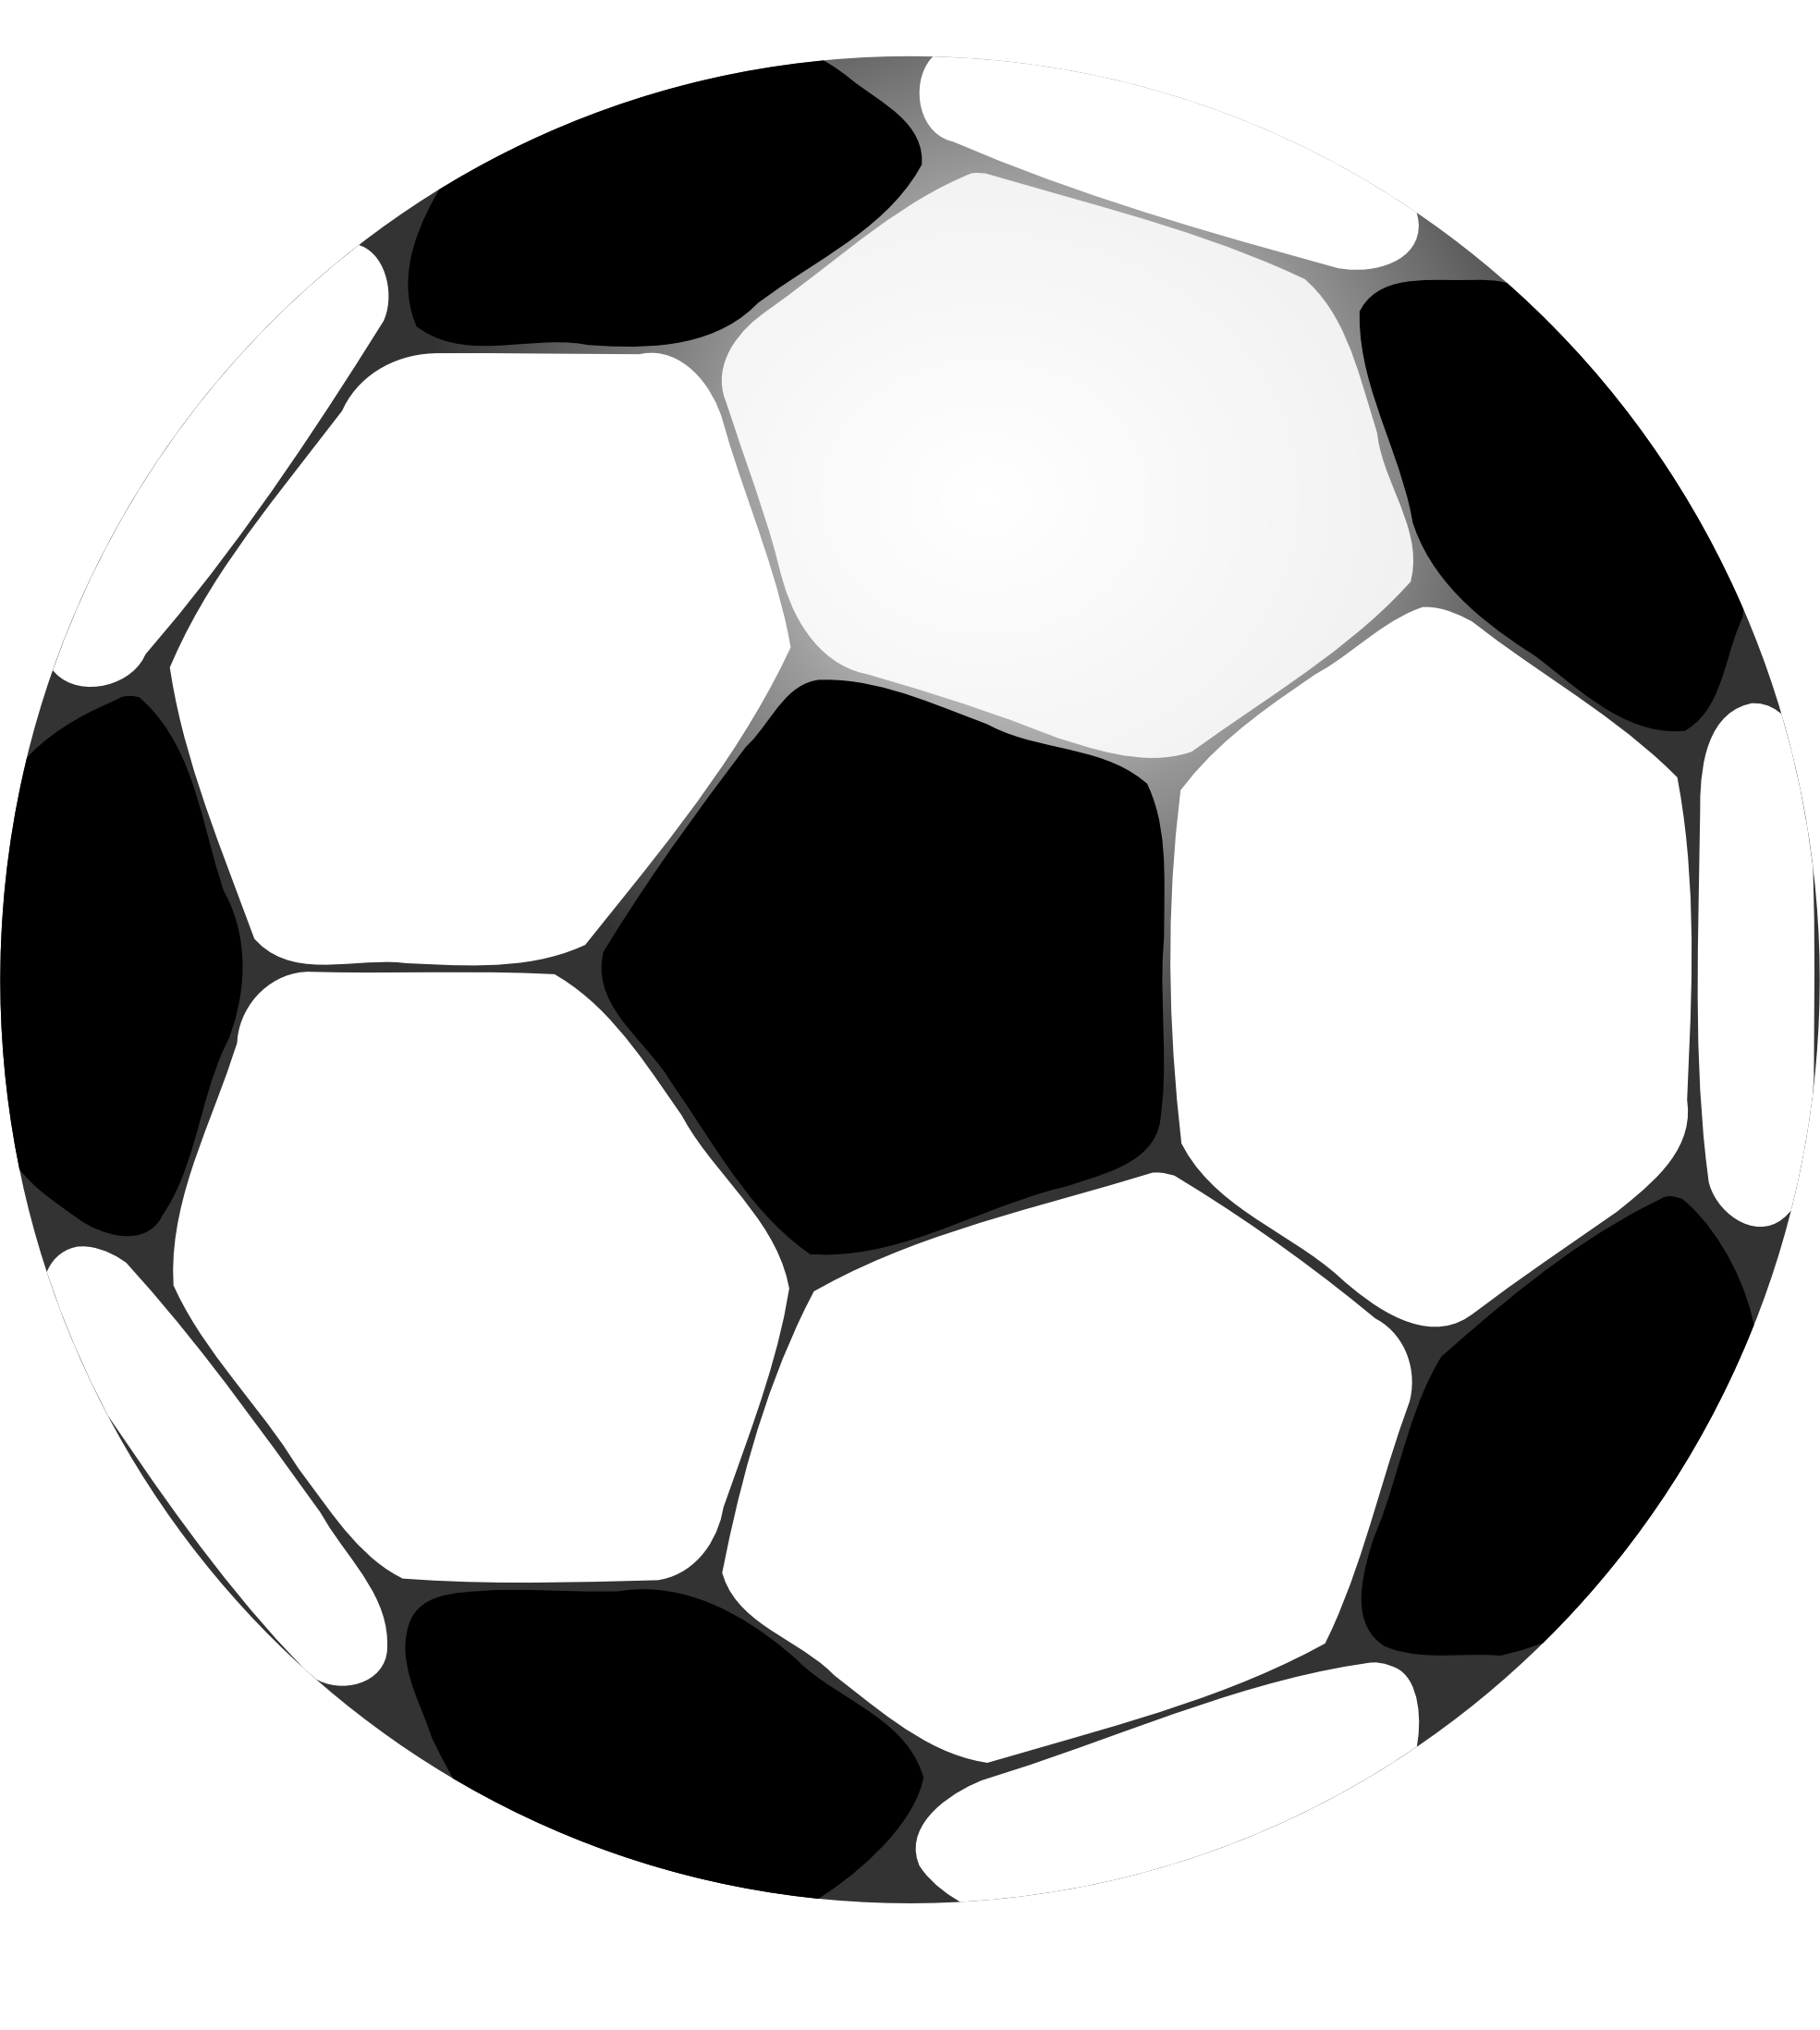 Football animated clipart png royalty free library Soccer Ball Clipart | Clipart Panda - Free Clipart Images png royalty free library